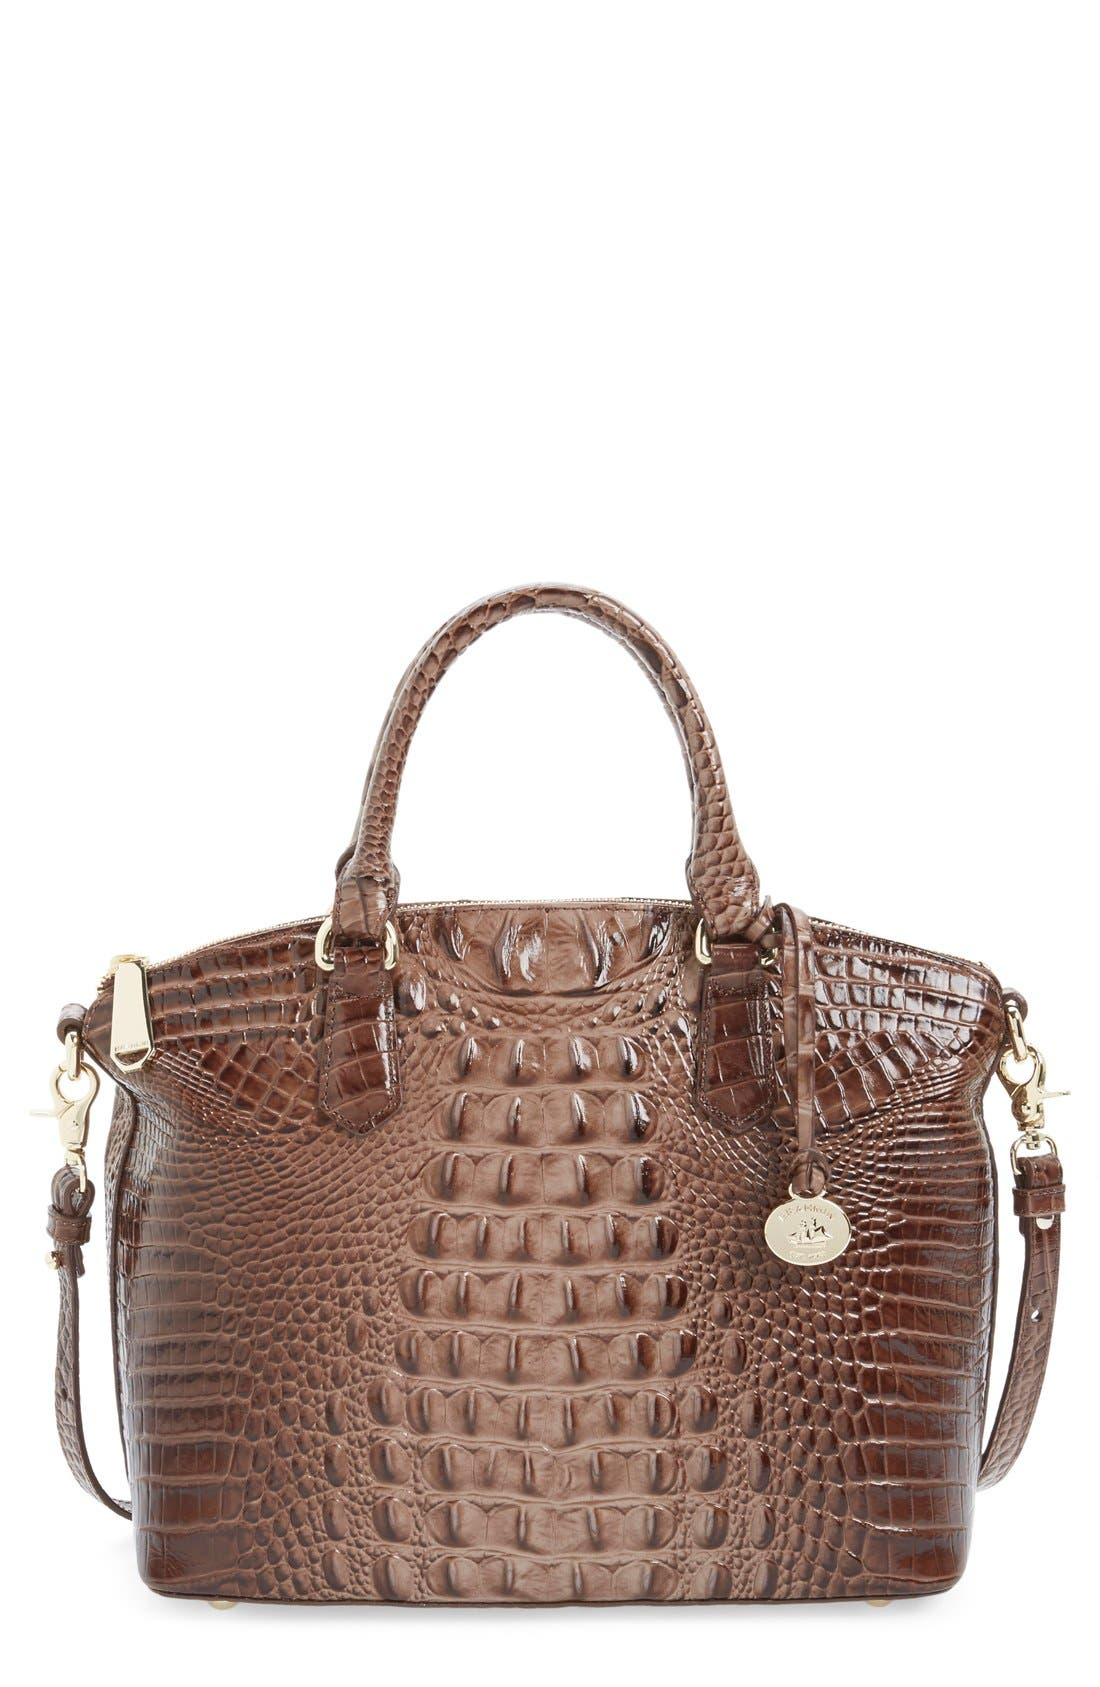 'Medium Duxbury' Croc Embossed Leather Satchel,                             Main thumbnail 11, color,